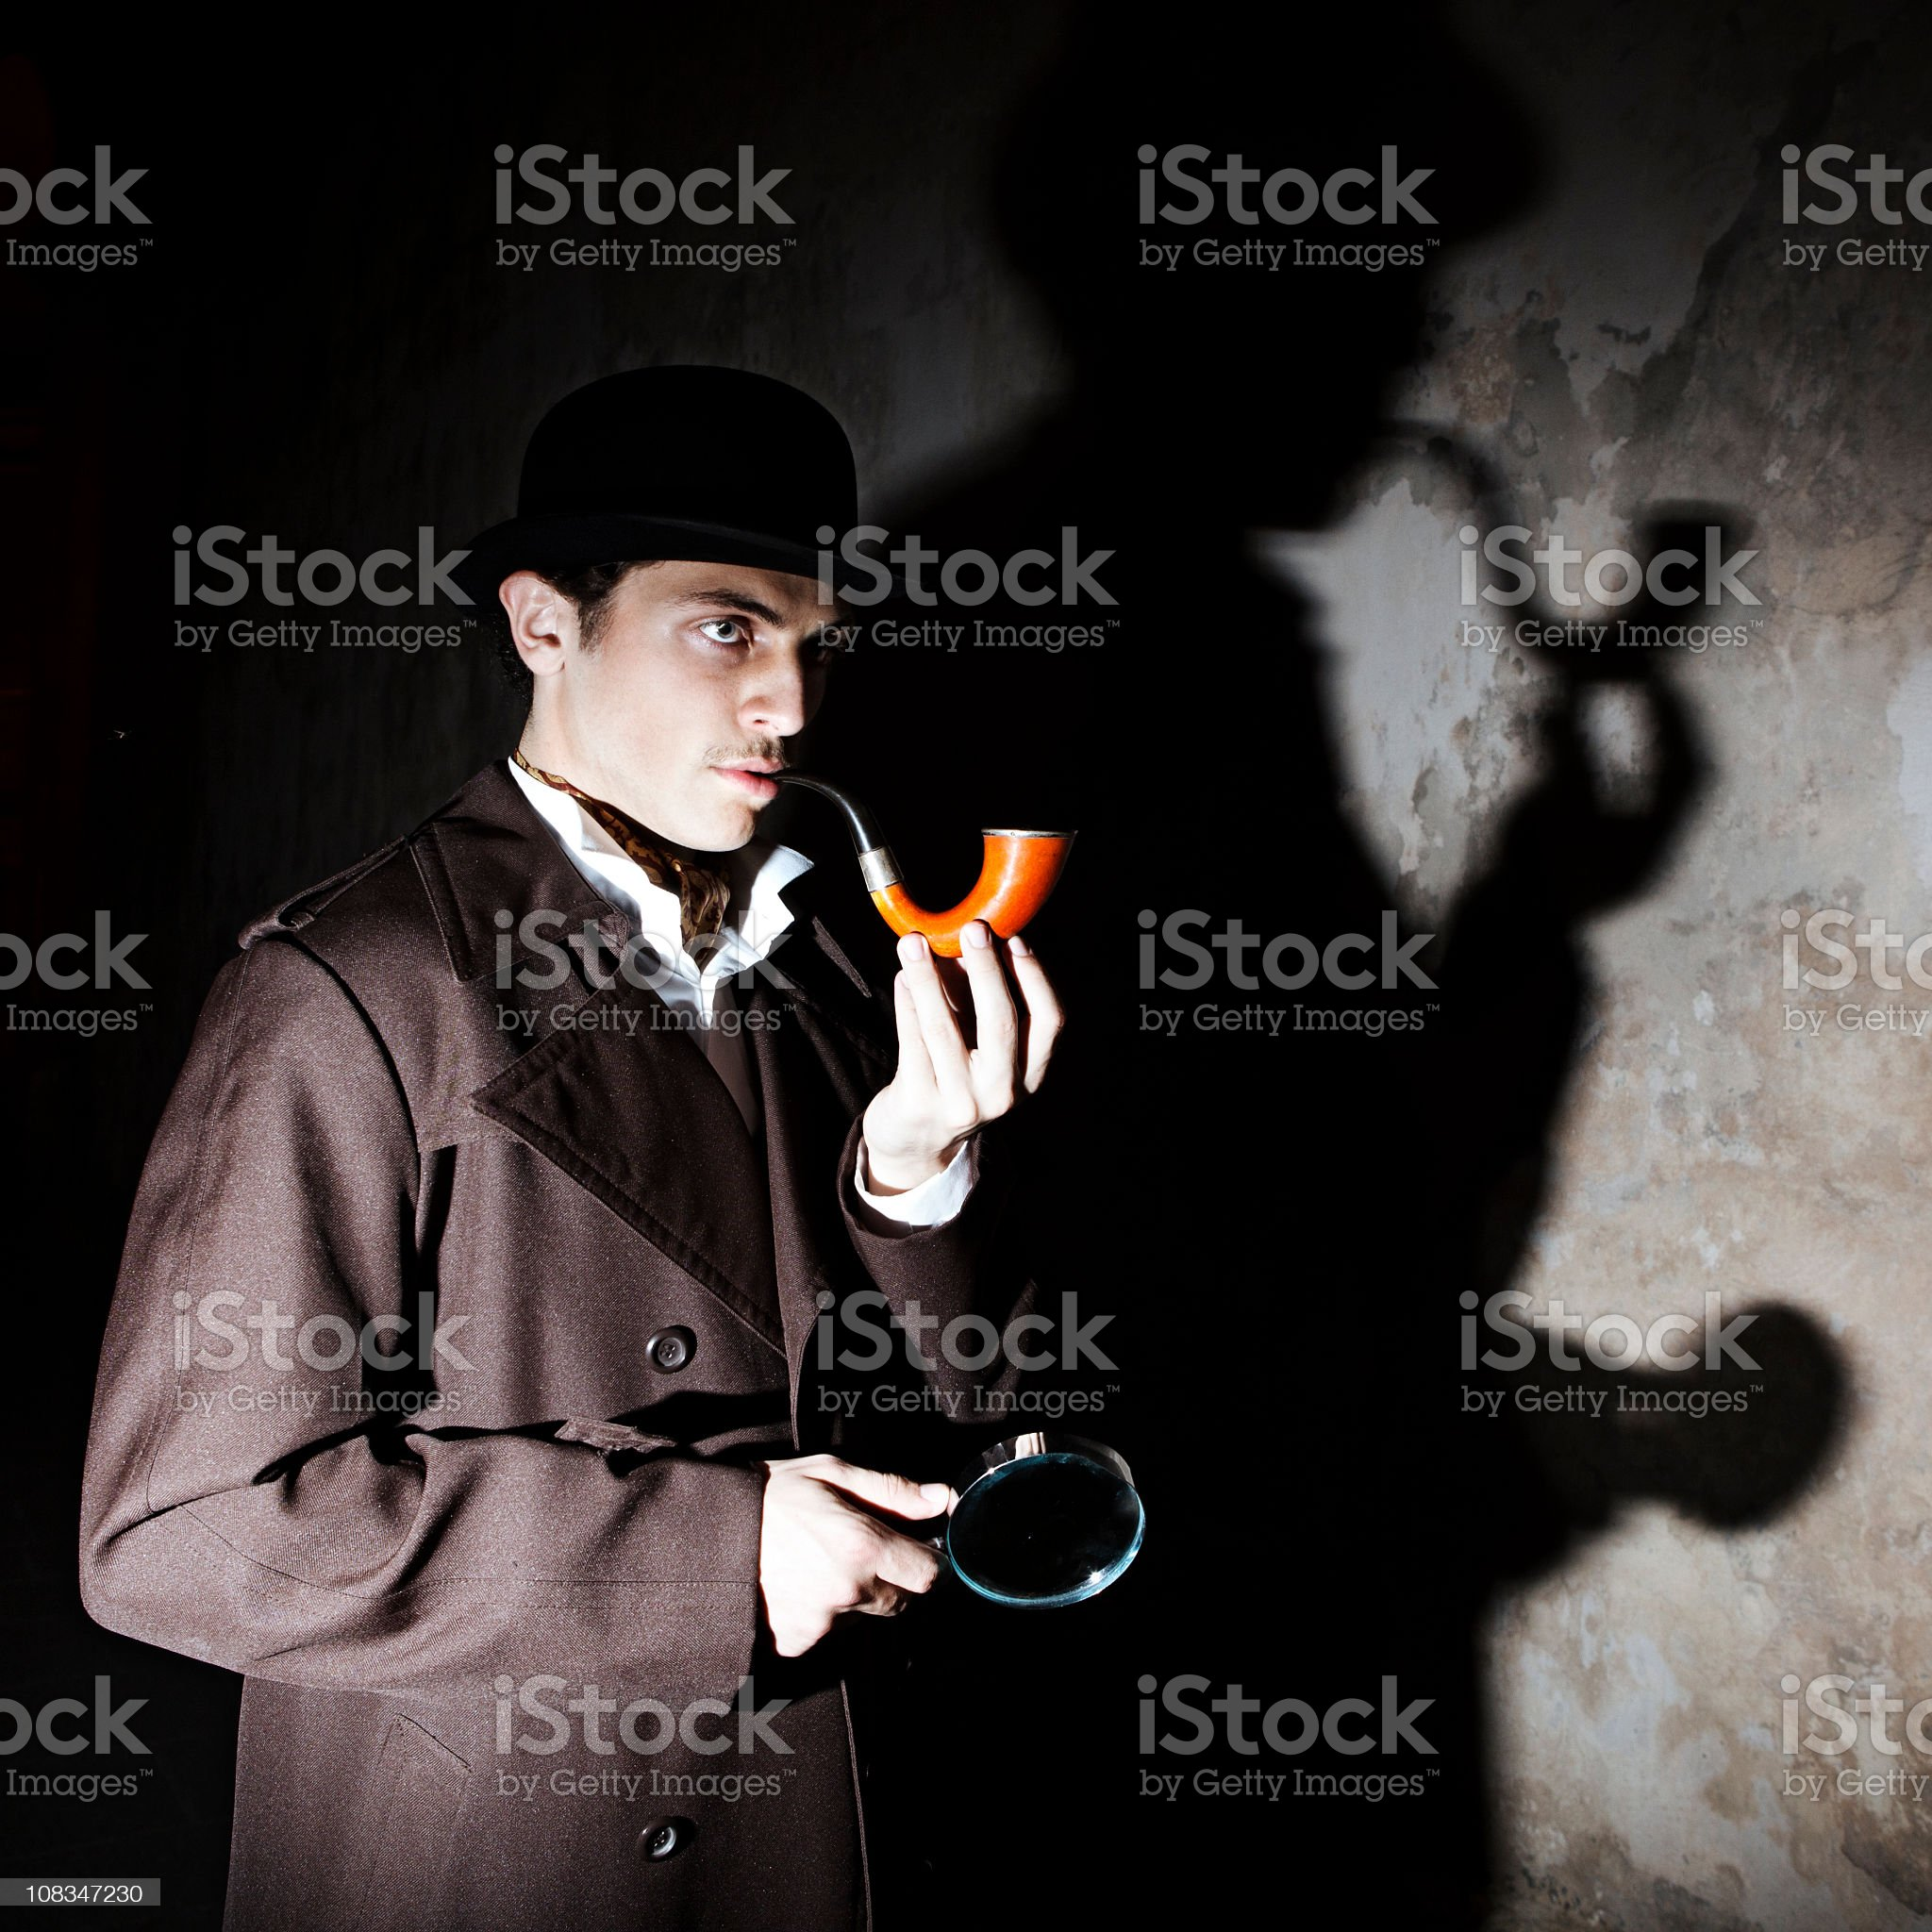 A man dressed as Sherlock Homes, with moody lighting royalty-free stock photo